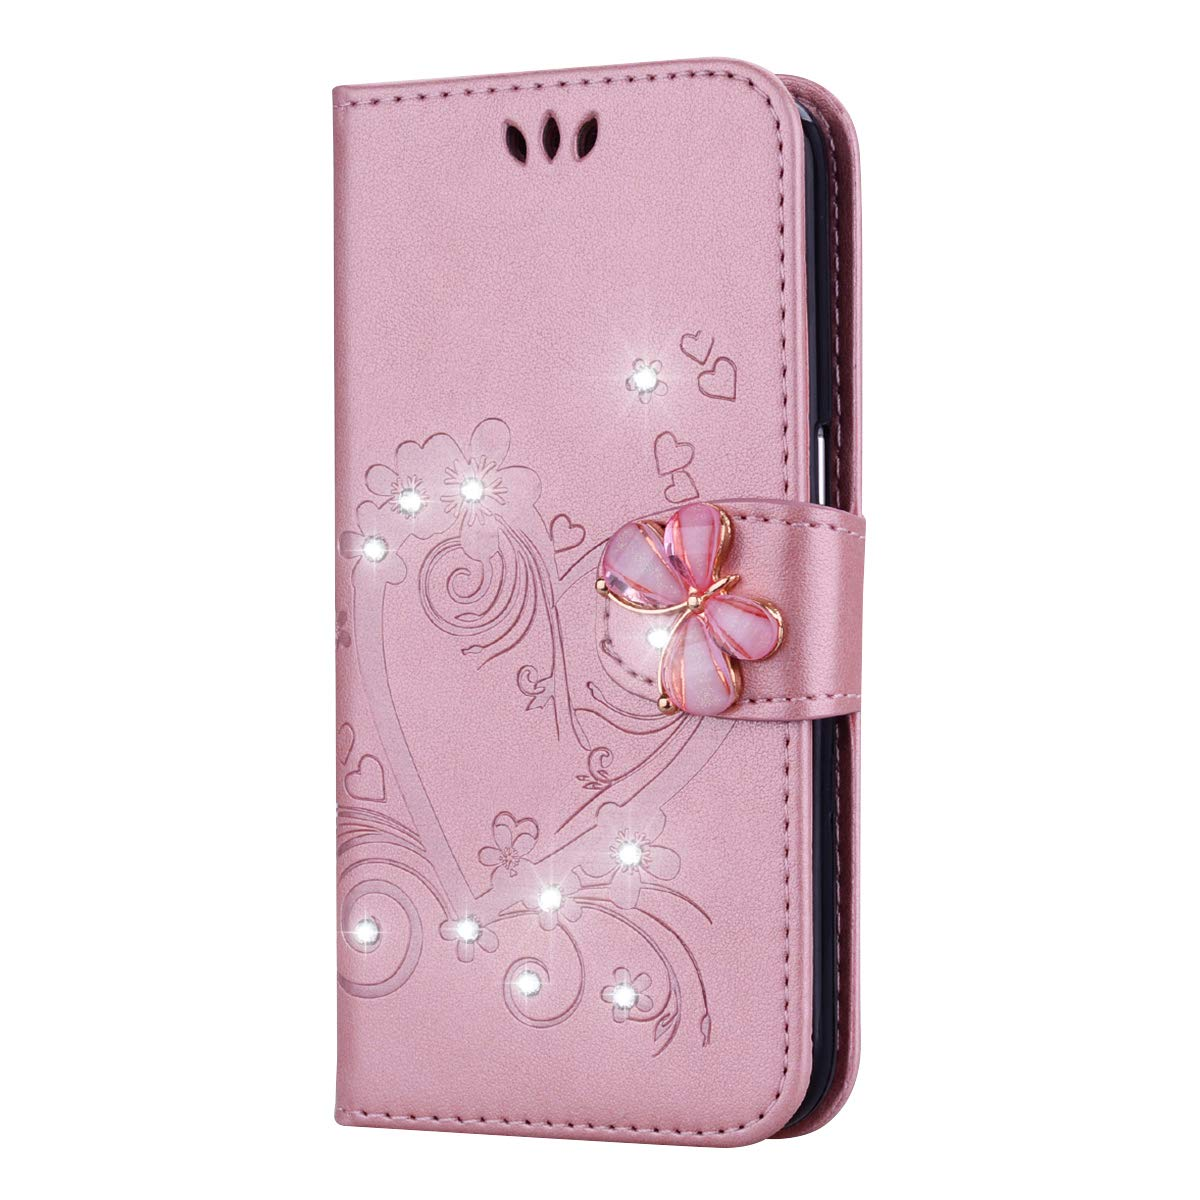 Bear Village Case Compatible with Apple iPhone 11 Pro, Leather Full Body Protective Cover with Credit Card Slot, Magnetic Closure and Kickstand Function, Rose Gold by Bear Village